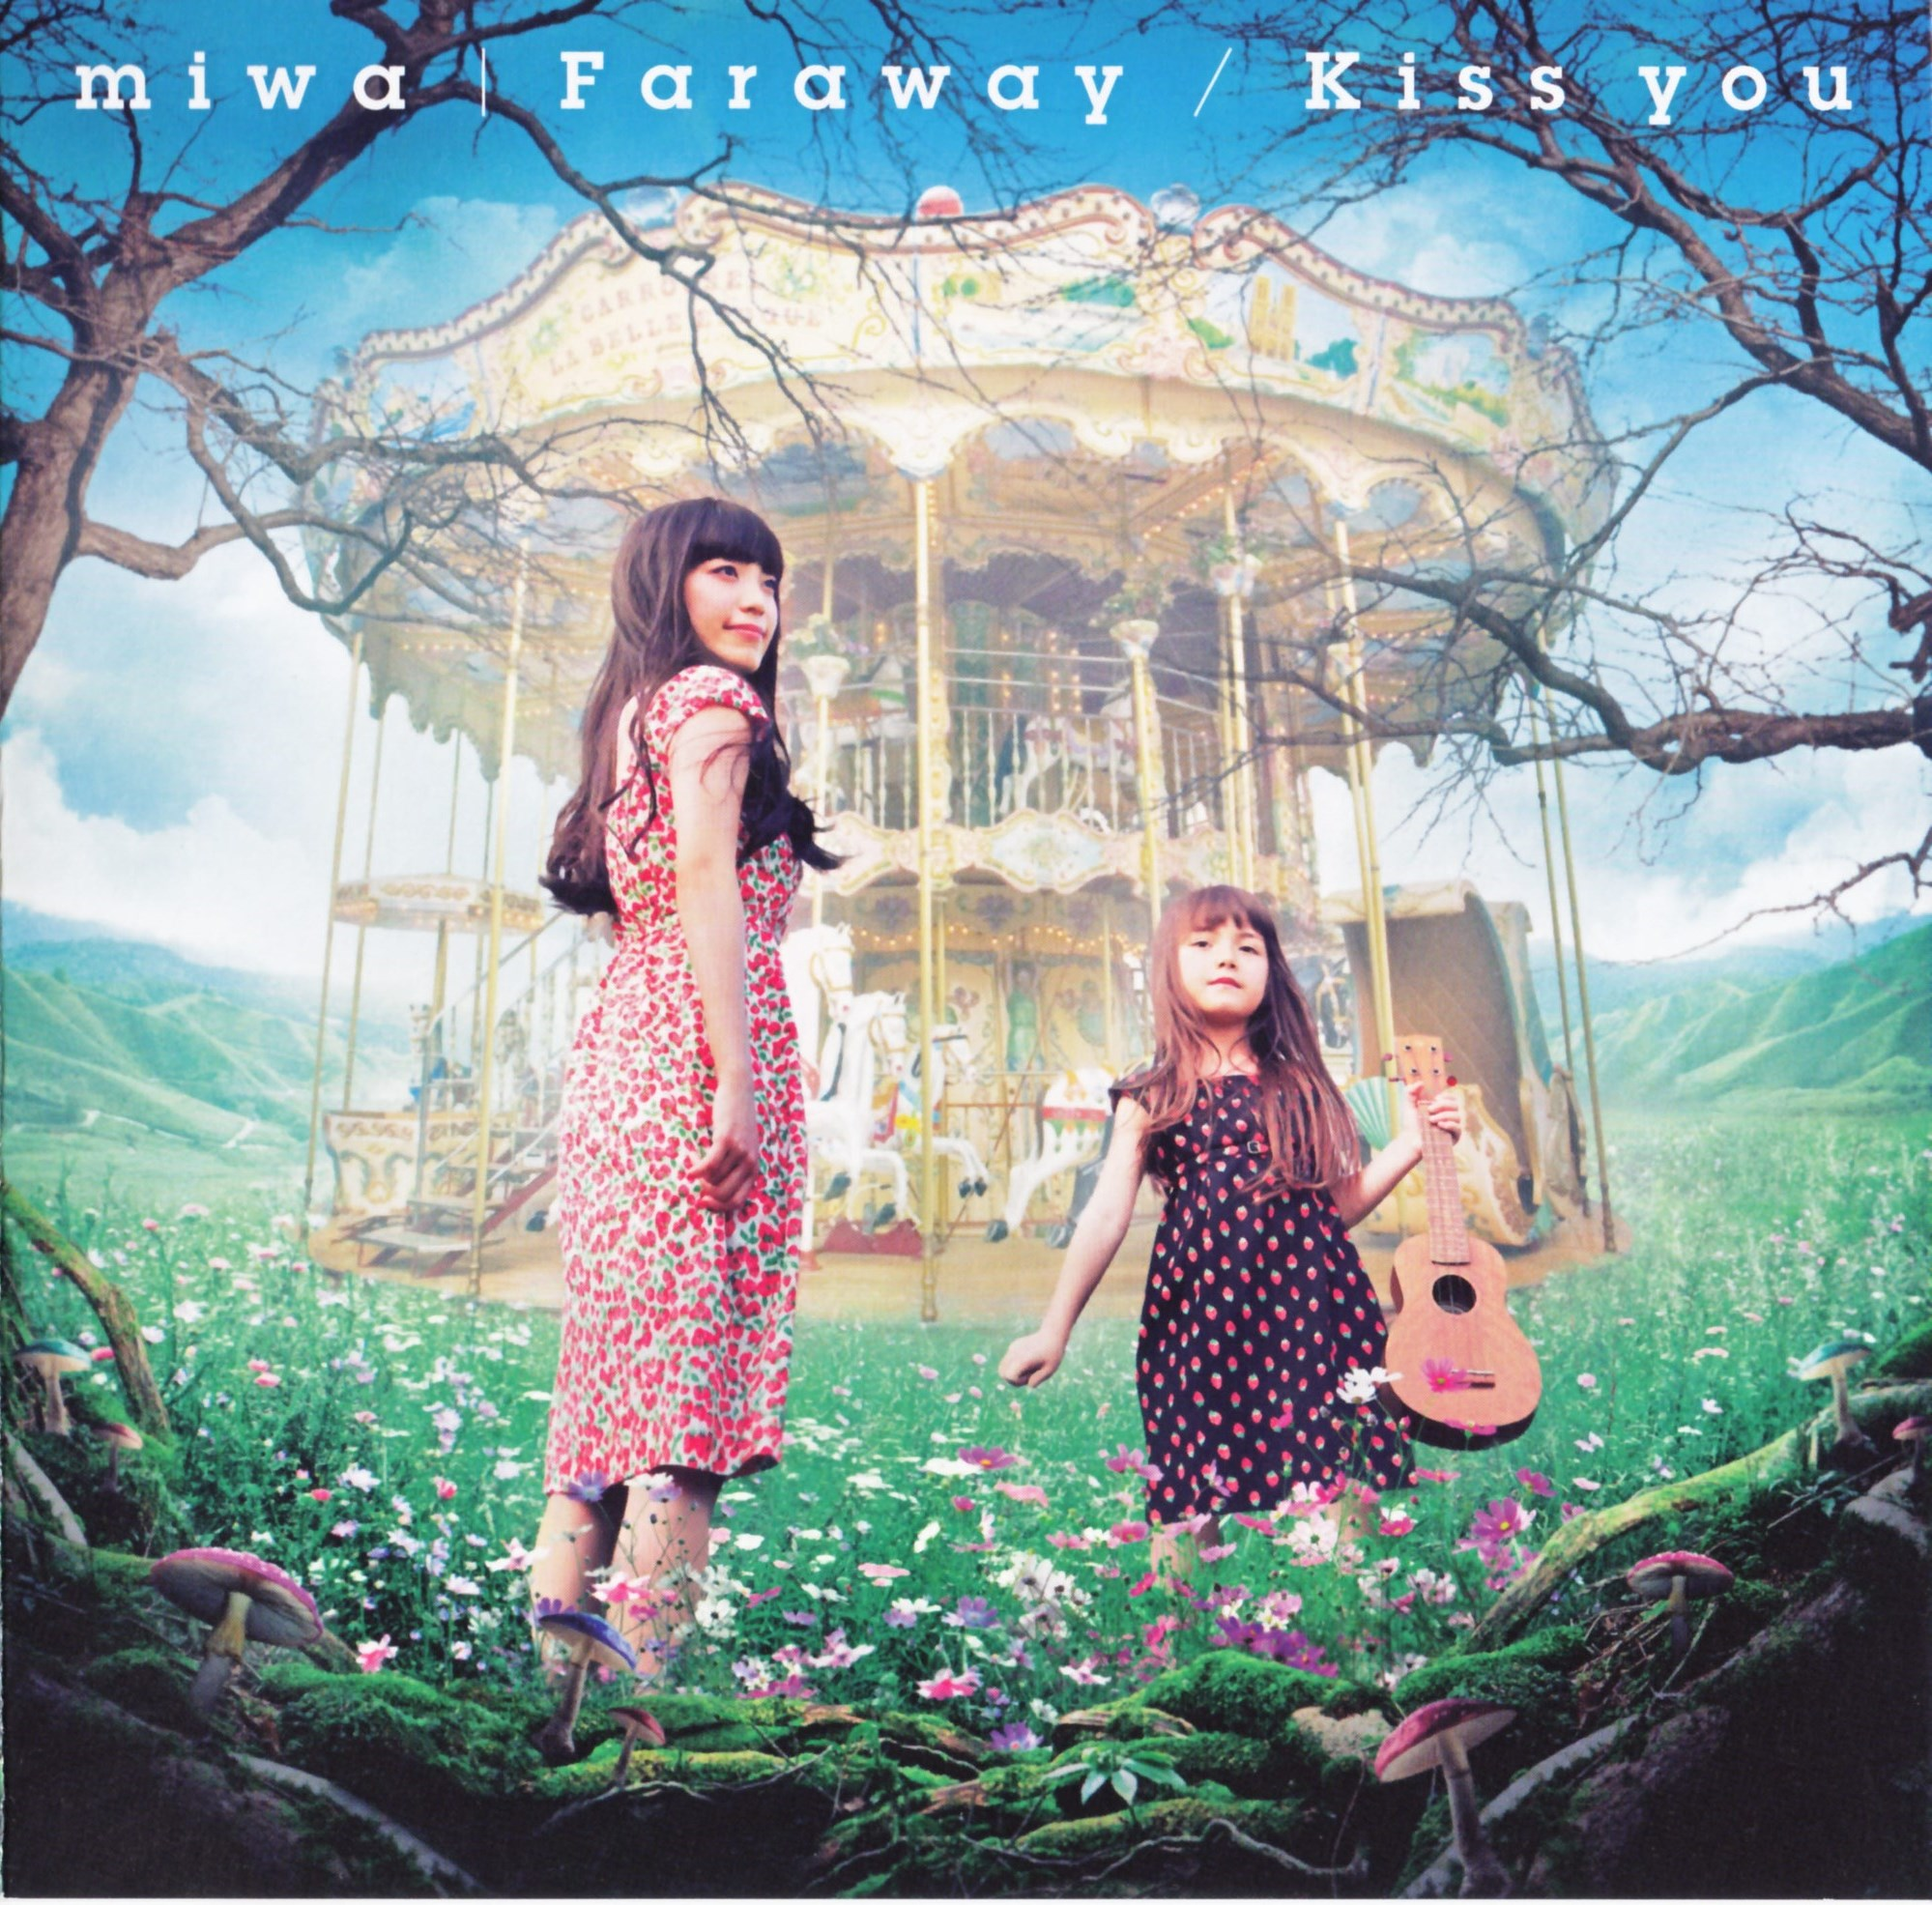 「Faraway/Kiss you」の miwa